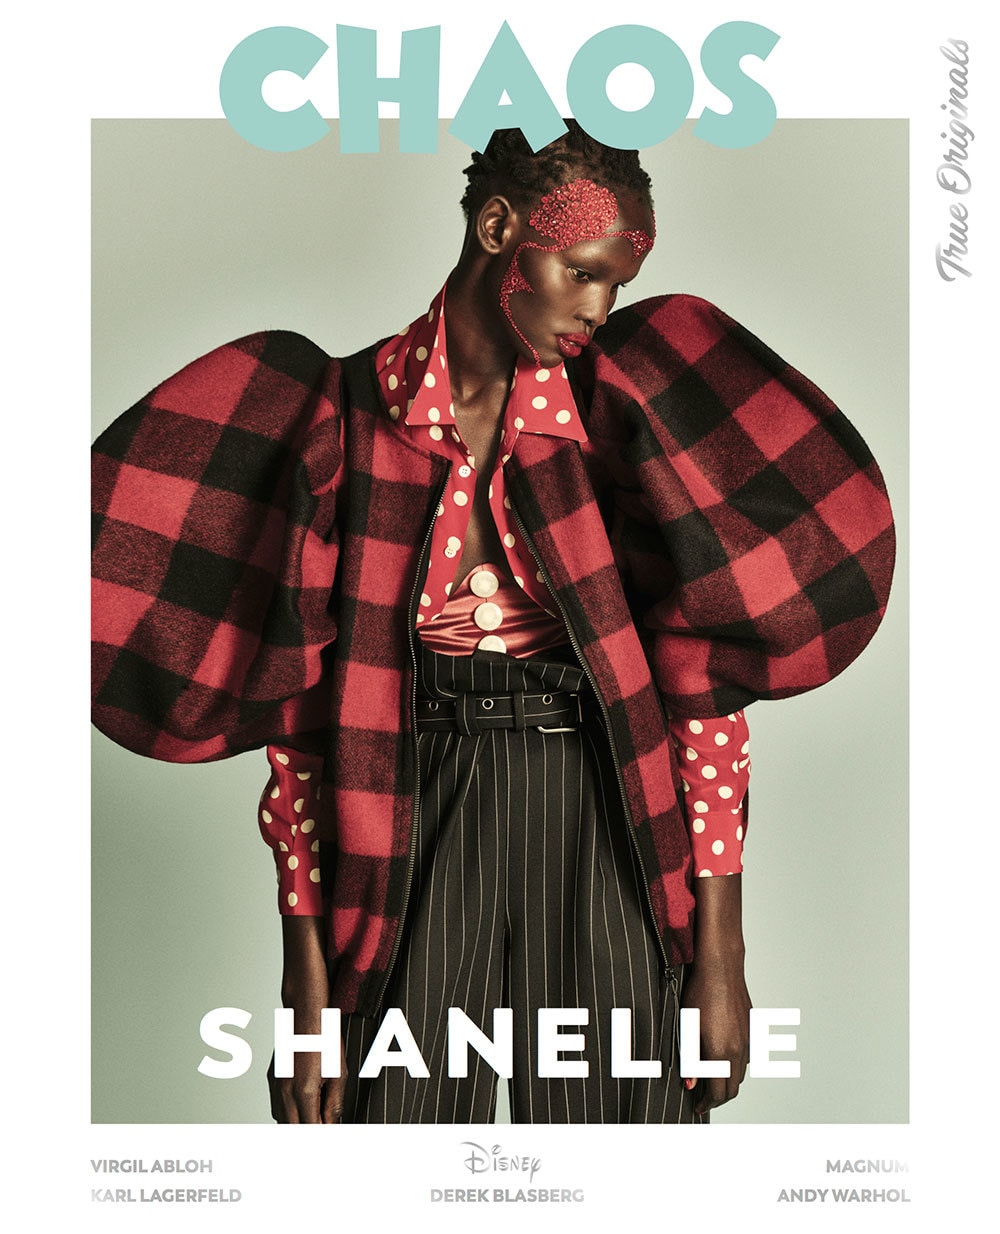 Shanelle Williams on a special edition cover for Chaos magazine